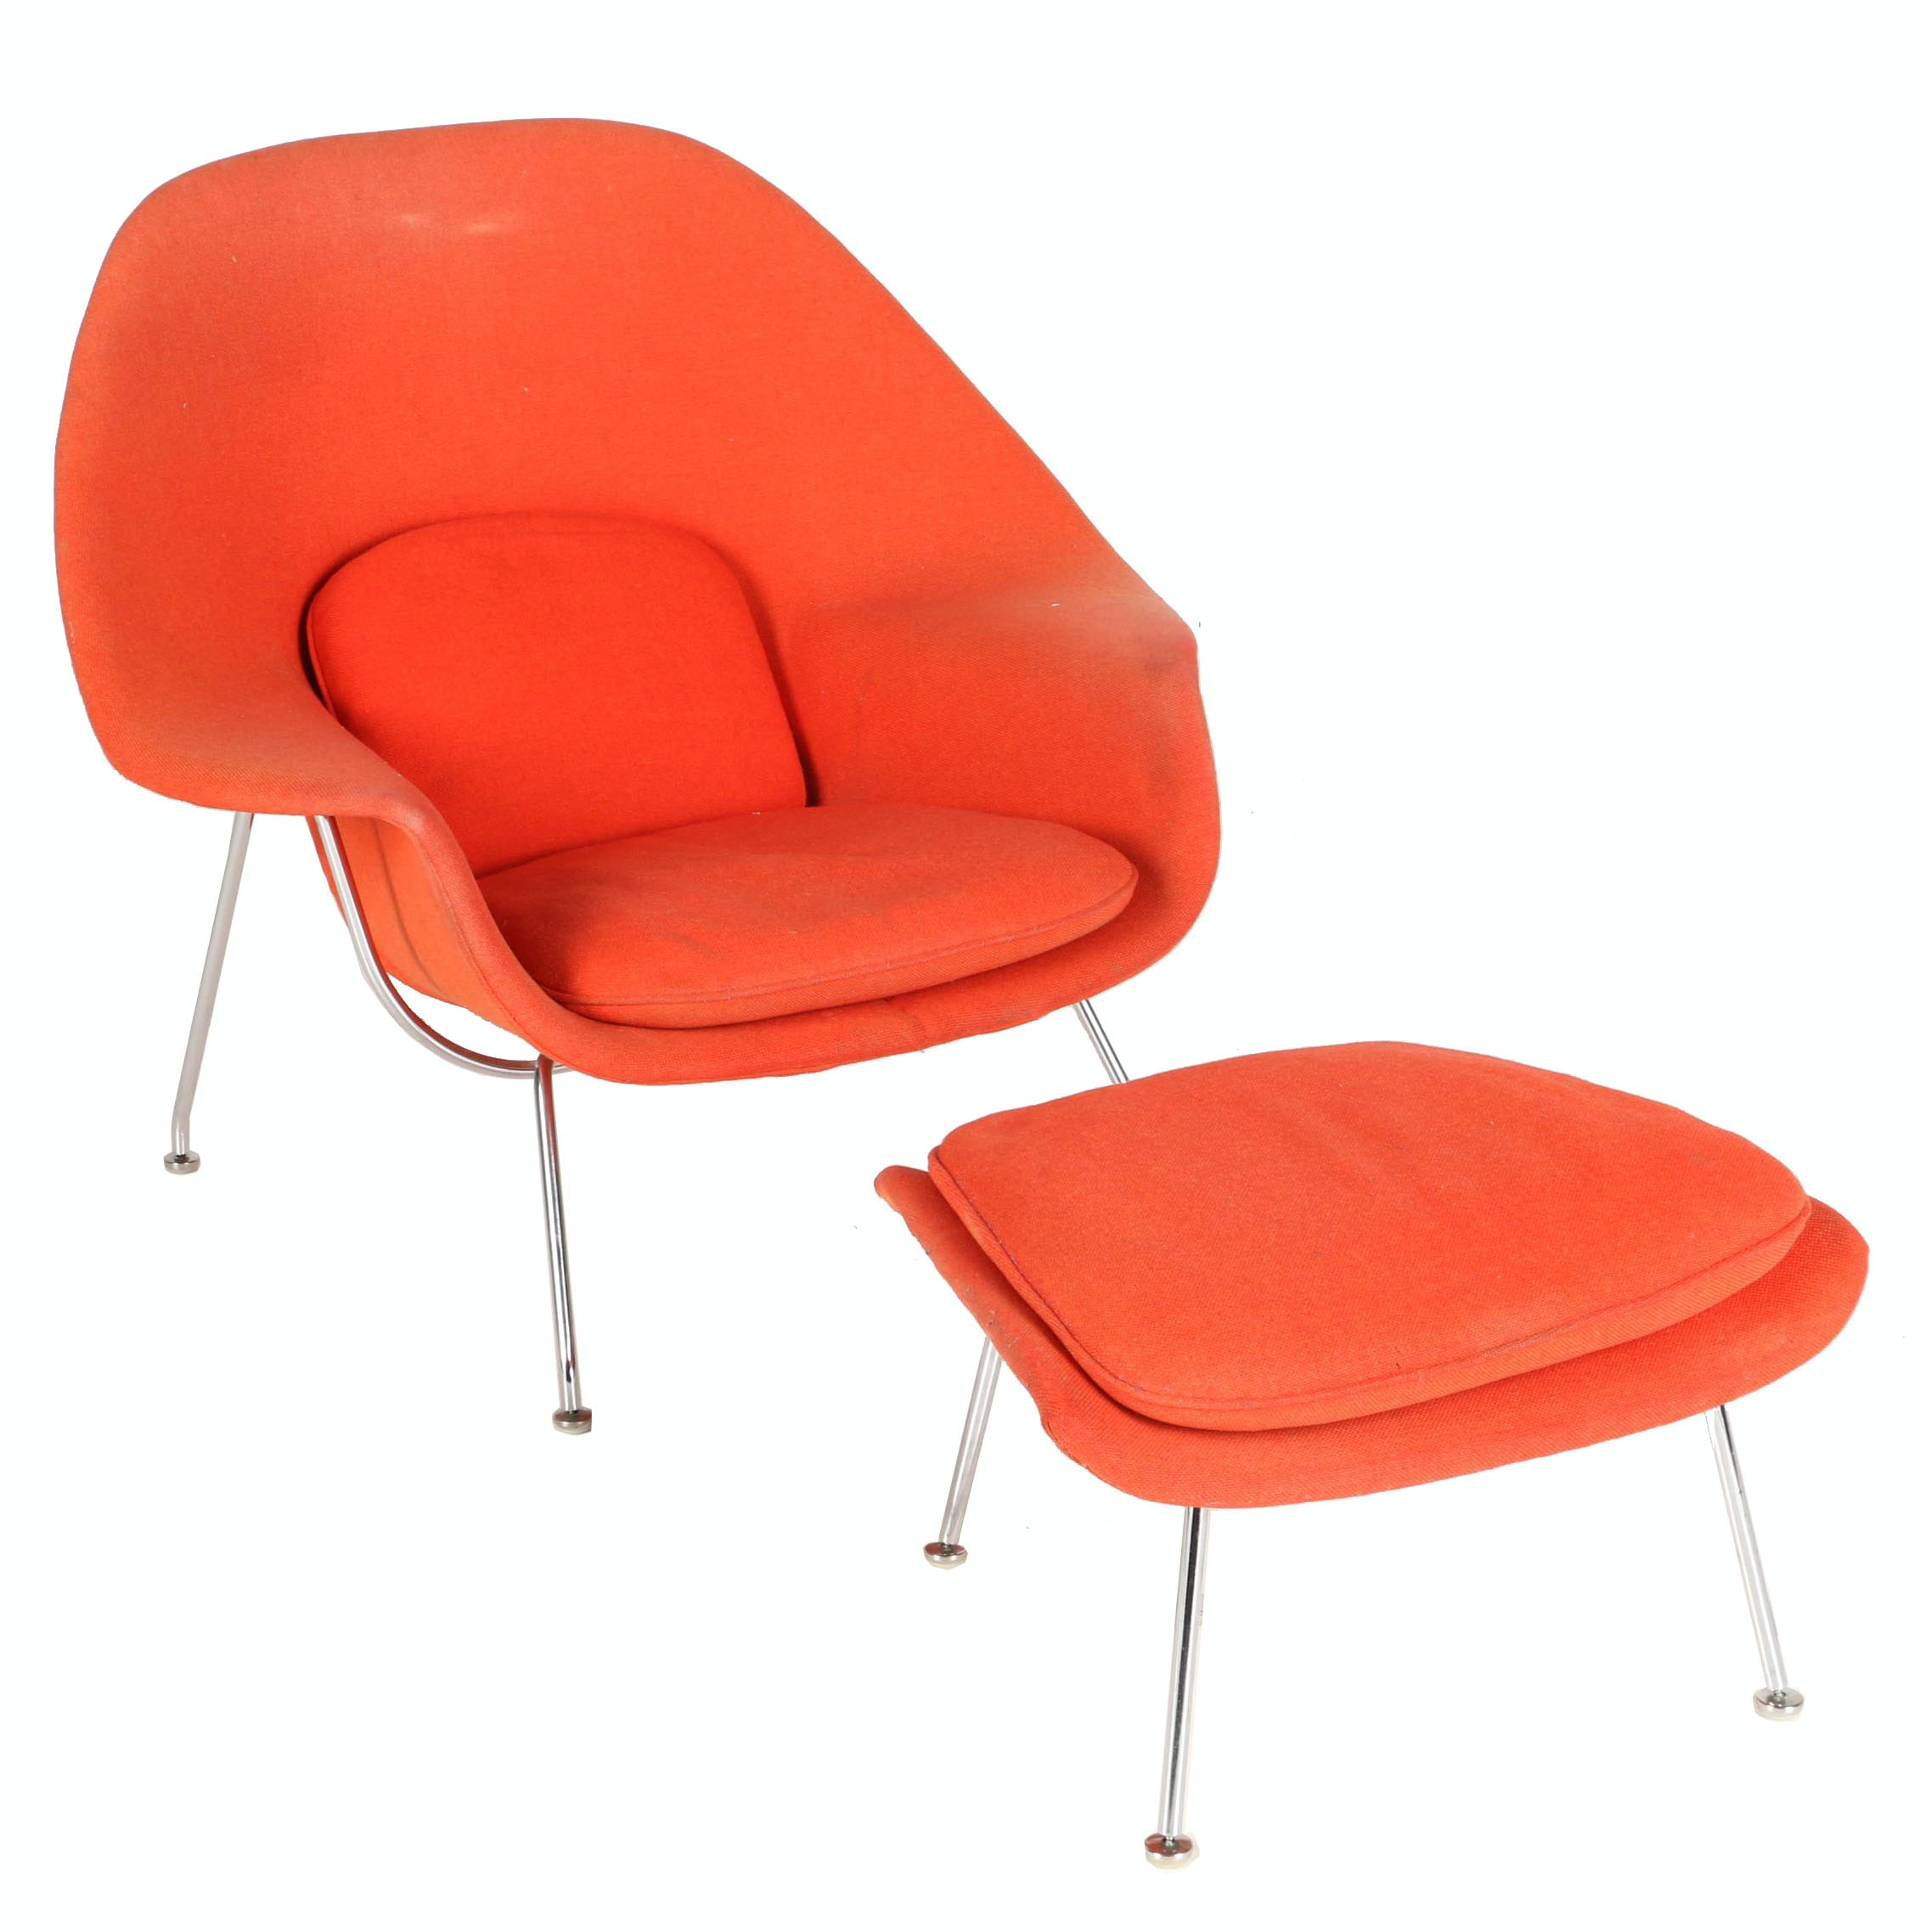 "Mid Century Modern ""Womb"" Chair and Ottoman by Eero Saarinen for Knoll With Provenance"